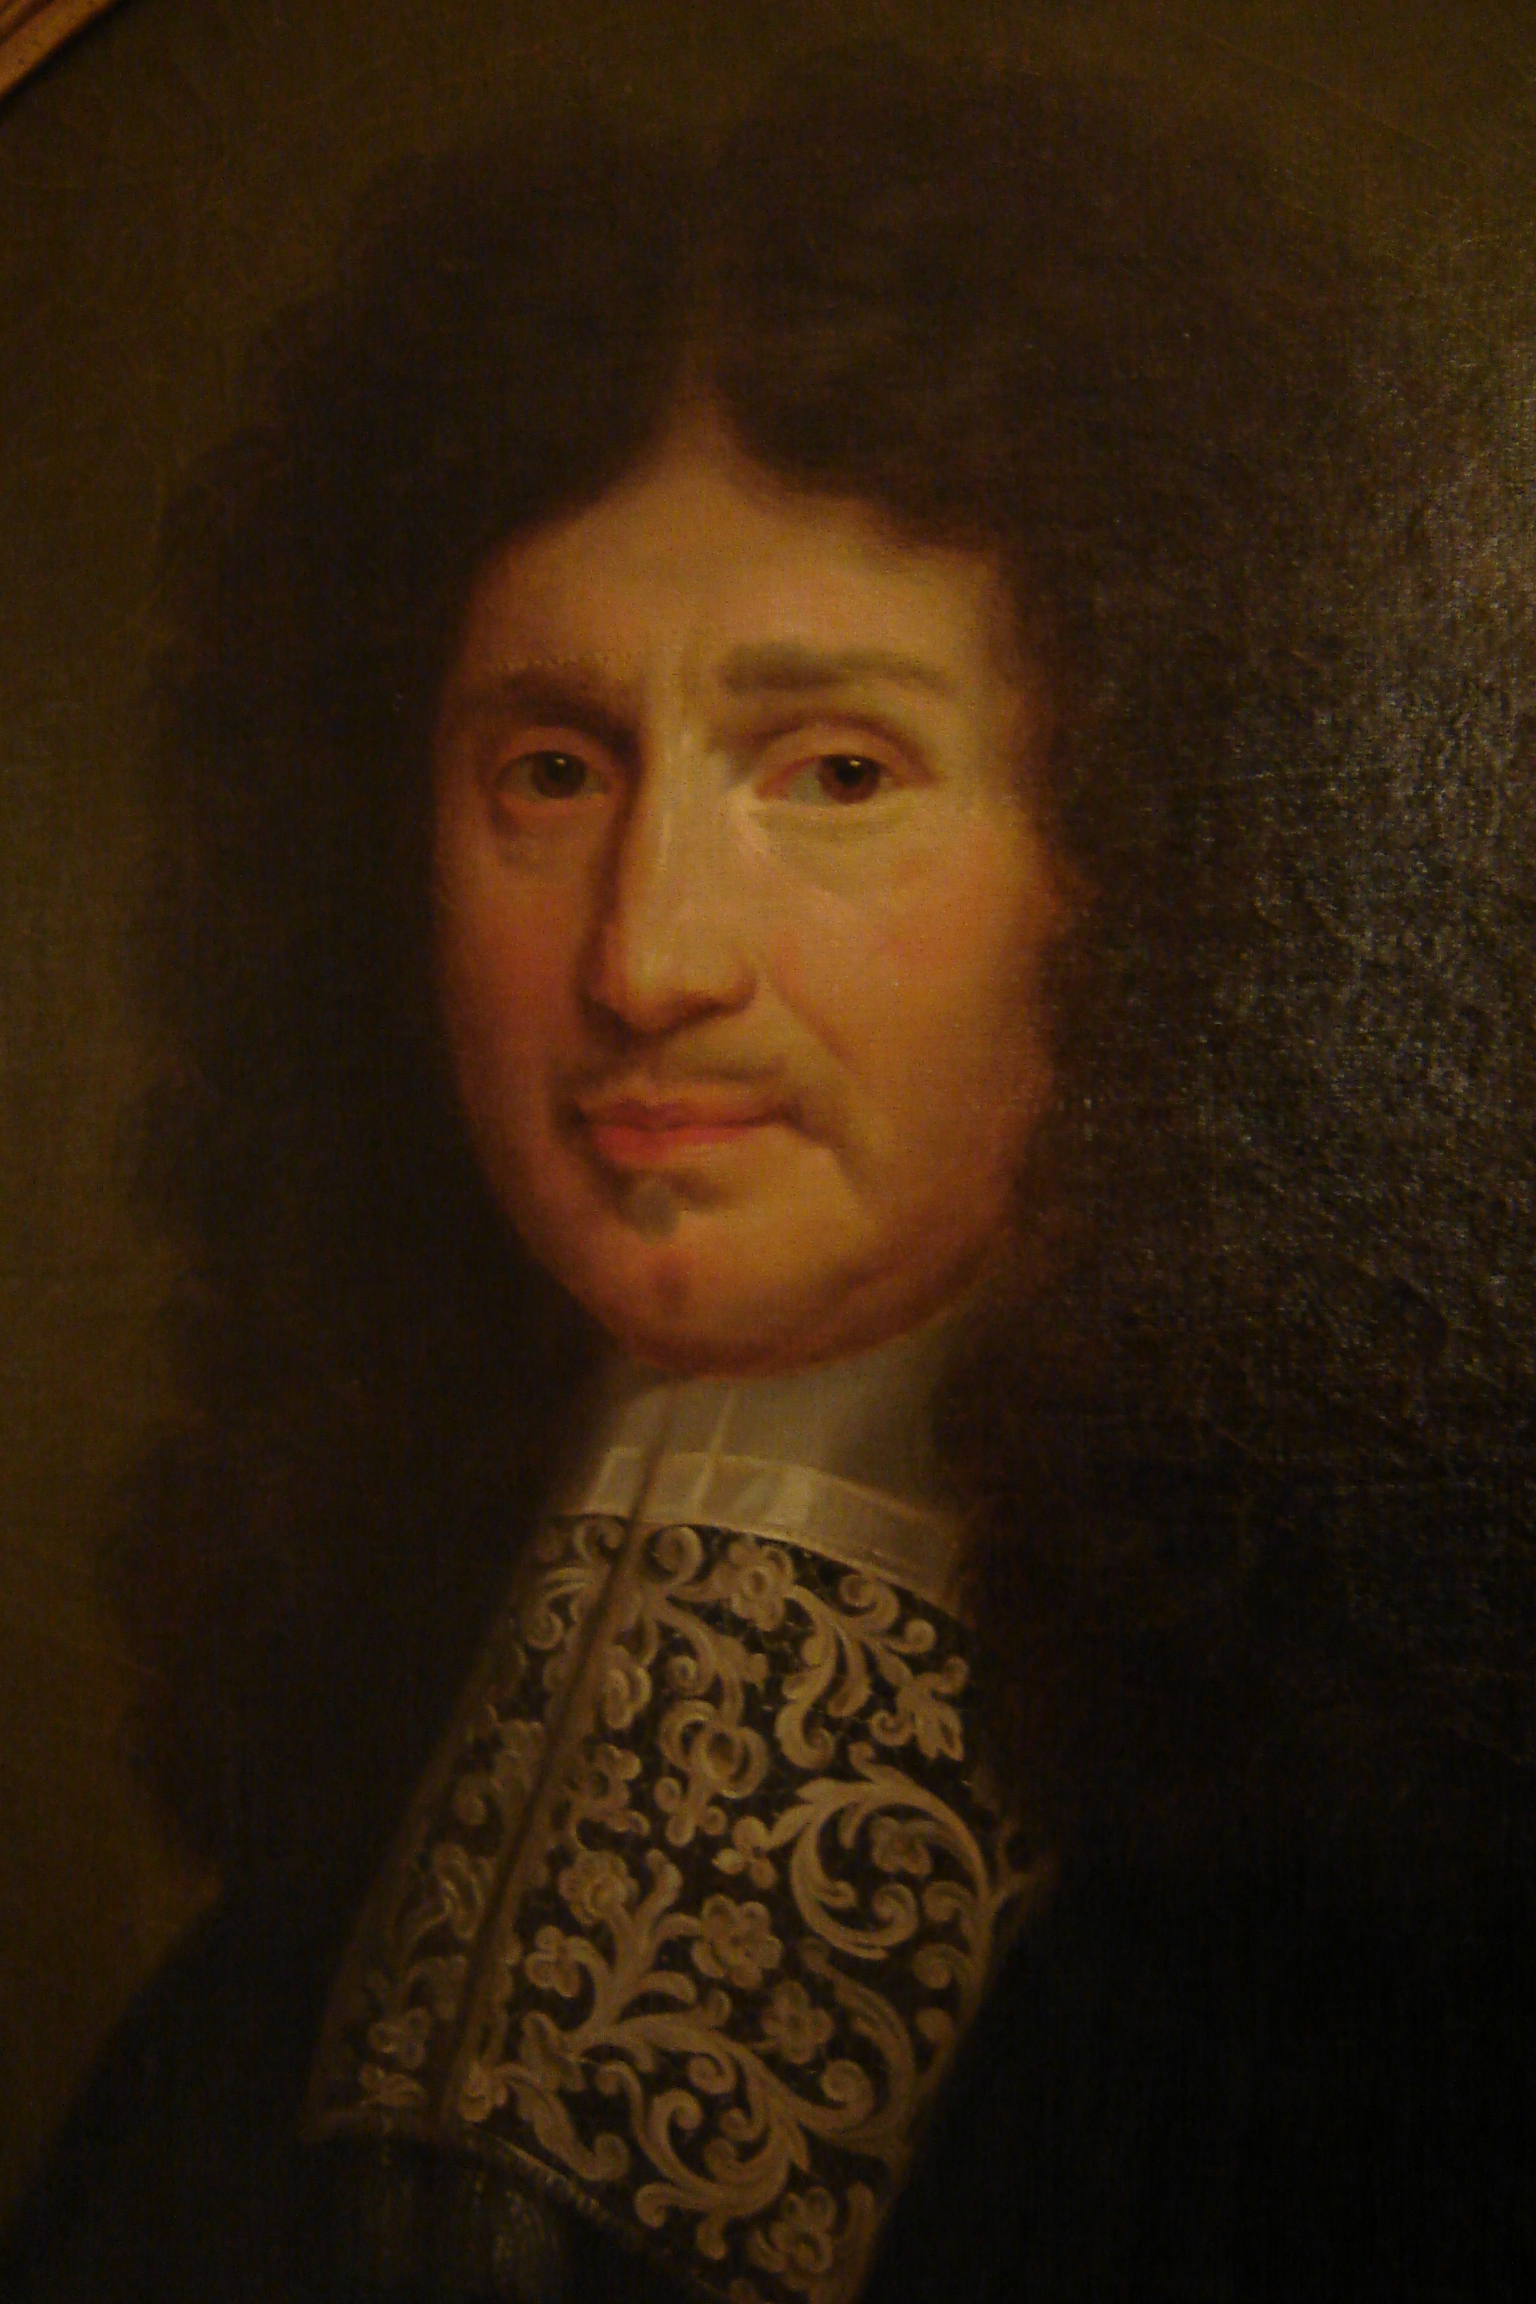 Robert de Nanteuil. Jean-Baptiste Colbert (1619-1683). Oil on canvas, 1676. Wikimedia Commons. Accessed July 17, 2015.